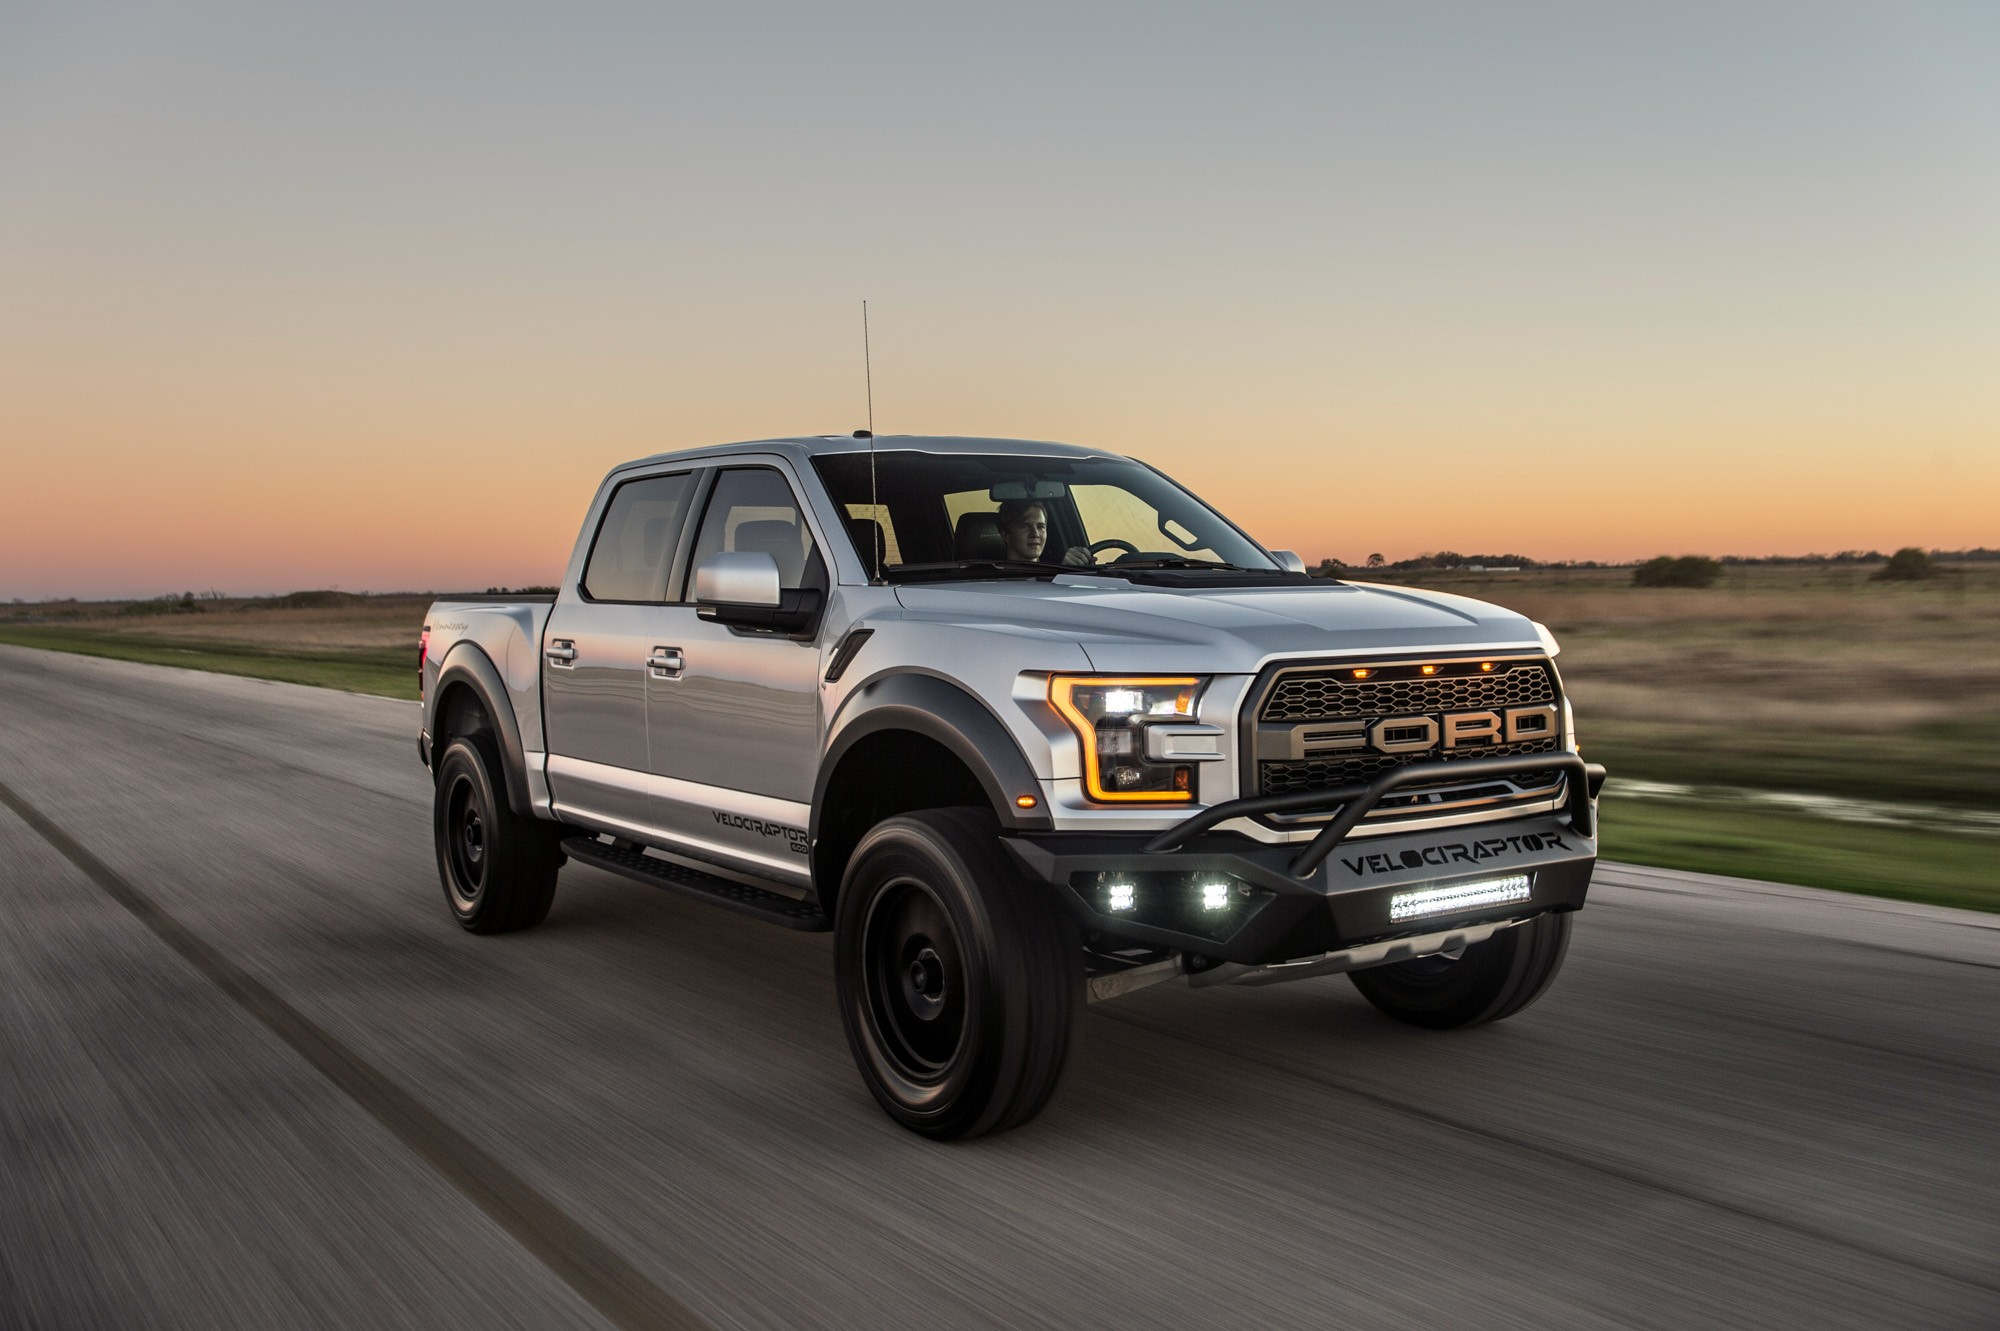 hennessey performance tunes the 2017 ford f 150 raptor to 605 hp autoevolution. Black Bedroom Furniture Sets. Home Design Ideas